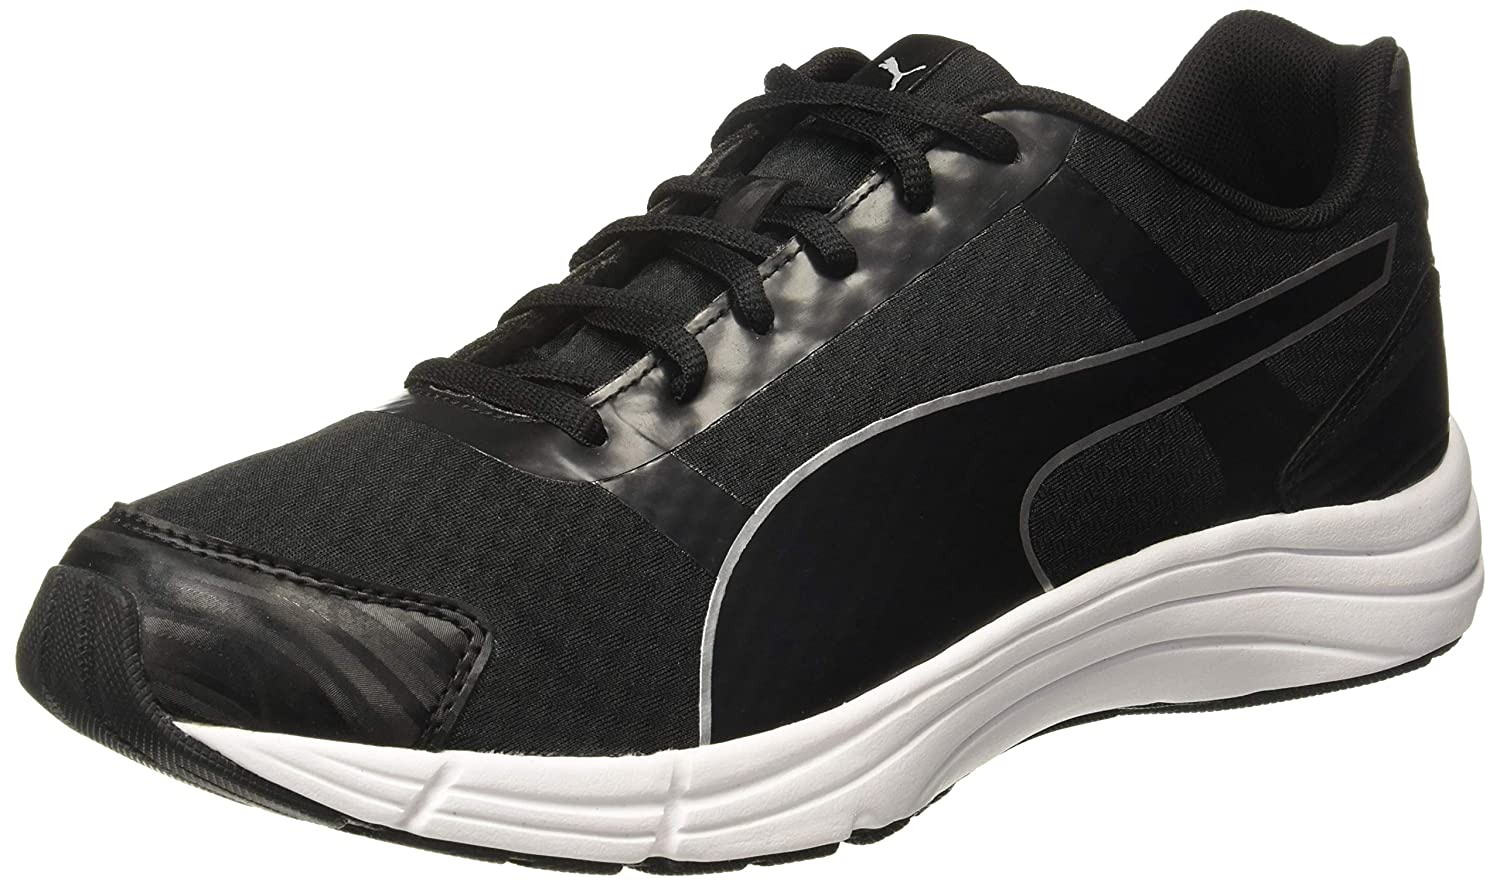 For 989/-(75% Off) Puma Men's Neutron IDP Running Shoes at 979 at Amazon India